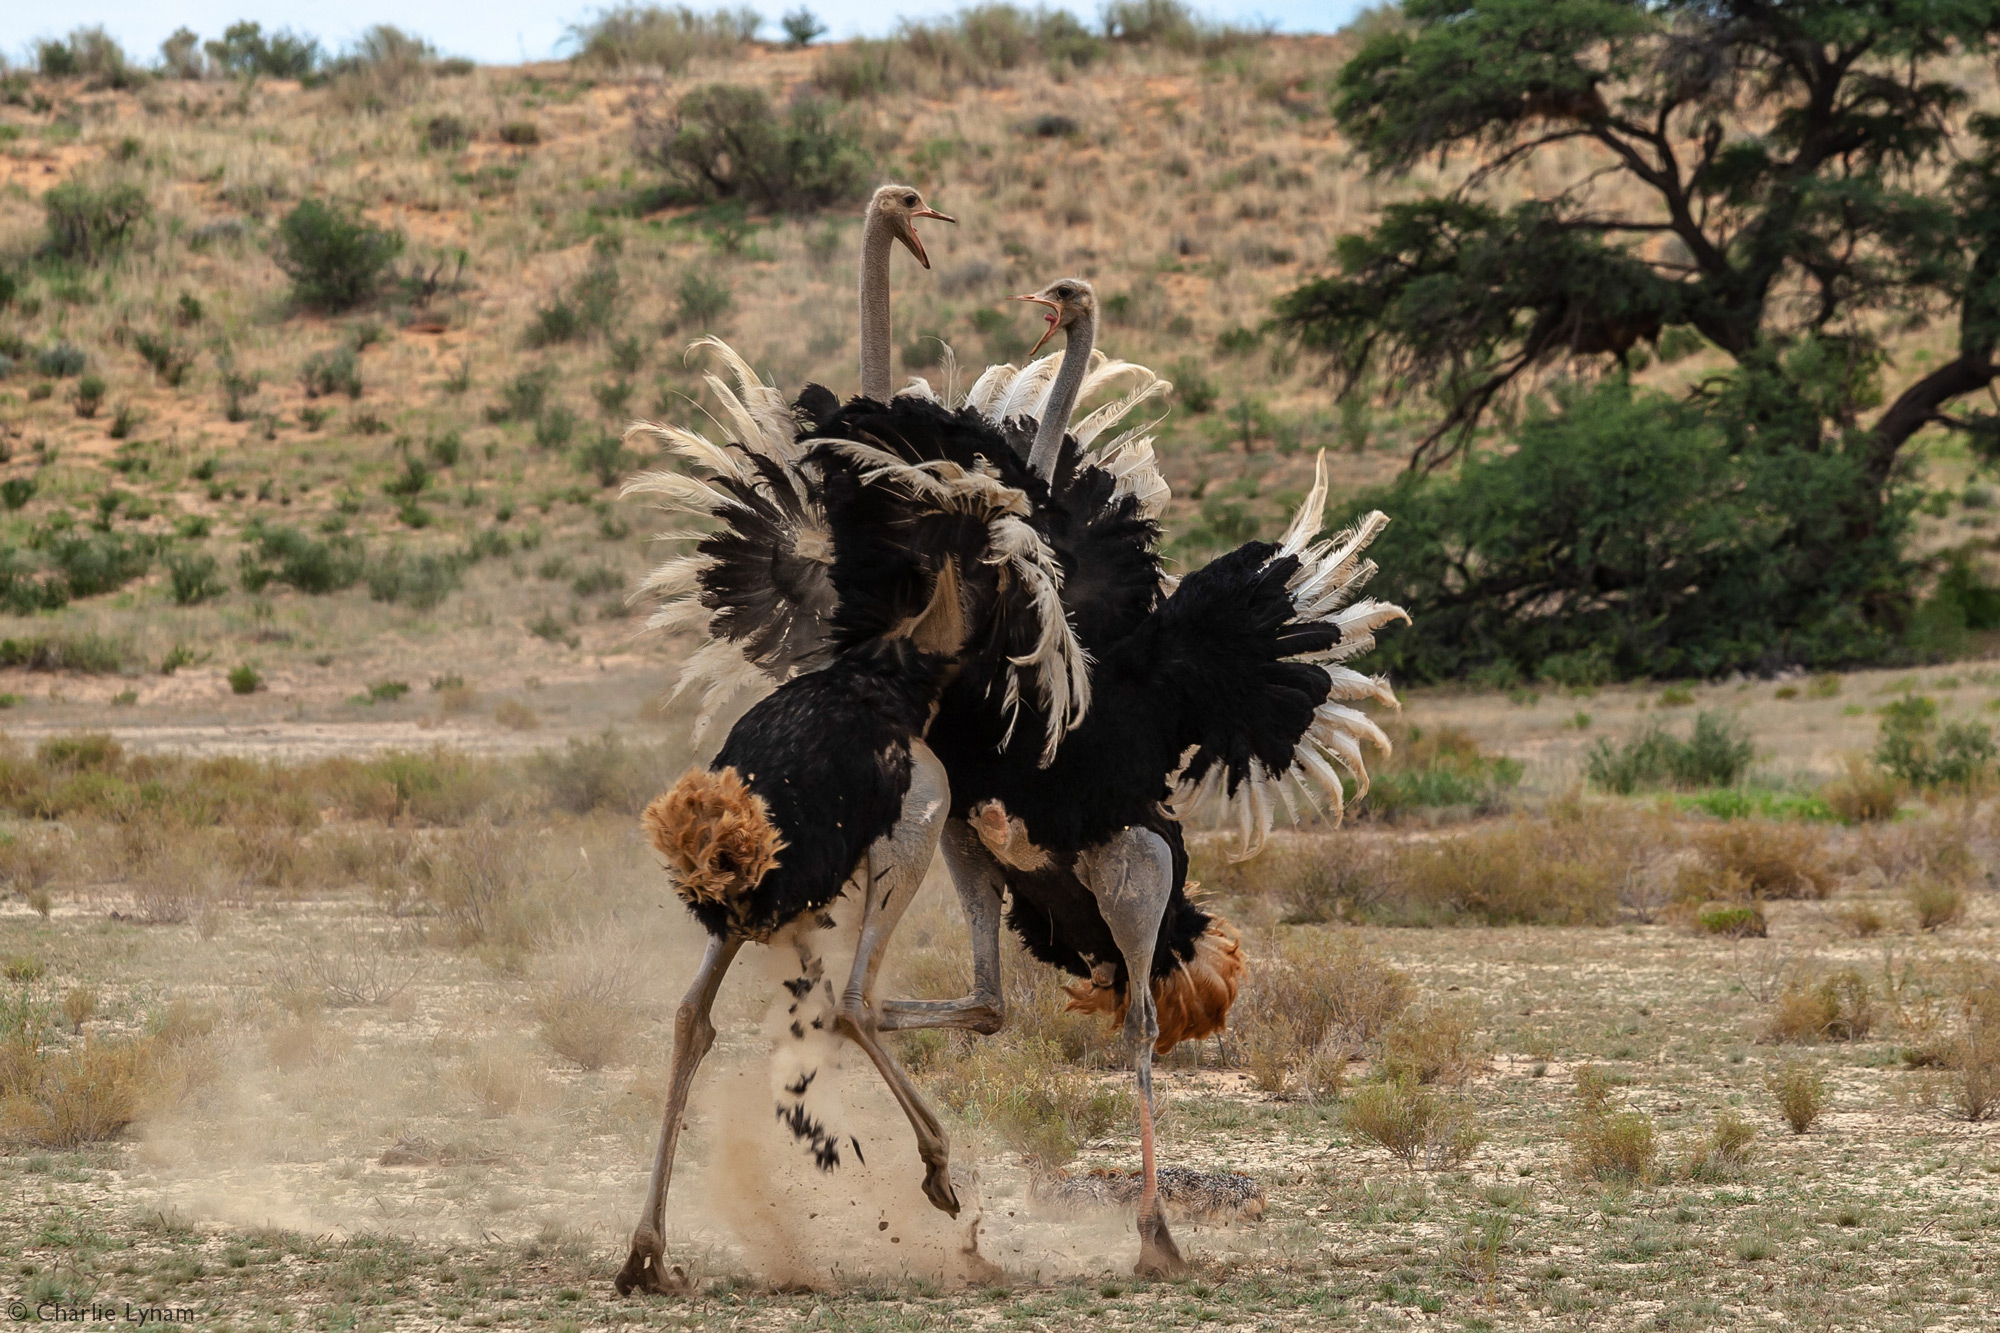 Two male ostriches fighting in Kgalagadi Transfrontier Park, South Africa